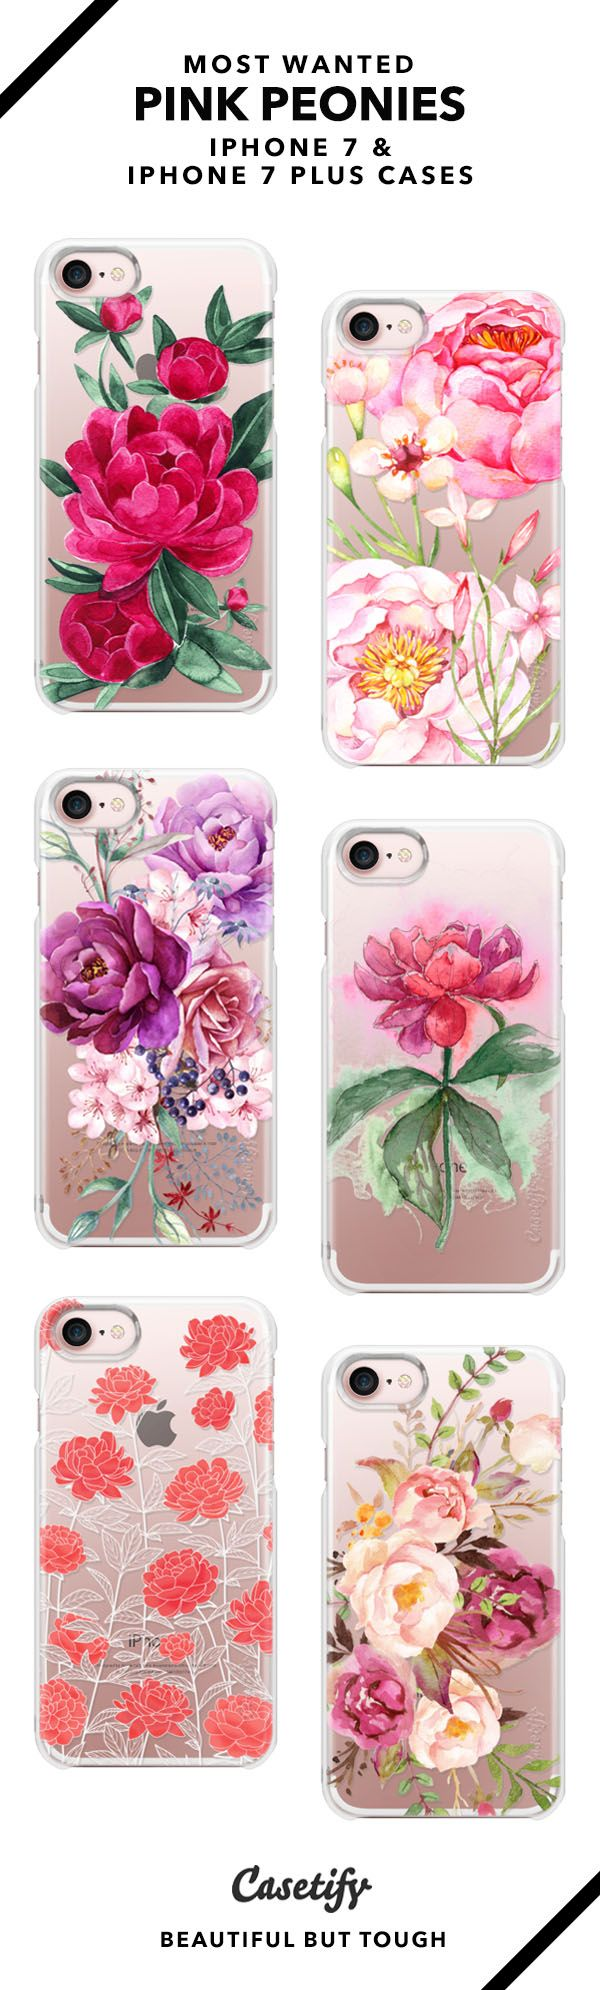 Elegance is when the inside is as beautiful as the outside. | Most Wanted Pink Peonies iPhone 7 Cases and iPhone 7 Plus Cases for Summer Peonies Lovers. For more Floral Cases, shop them here ☝☝☝ BEAUTIFUL BUT TOUGH ✨ - Chanel, Peony, Dress, Nursery, Wedding, Design, Fashion, Bouquet, Garden, Wreath